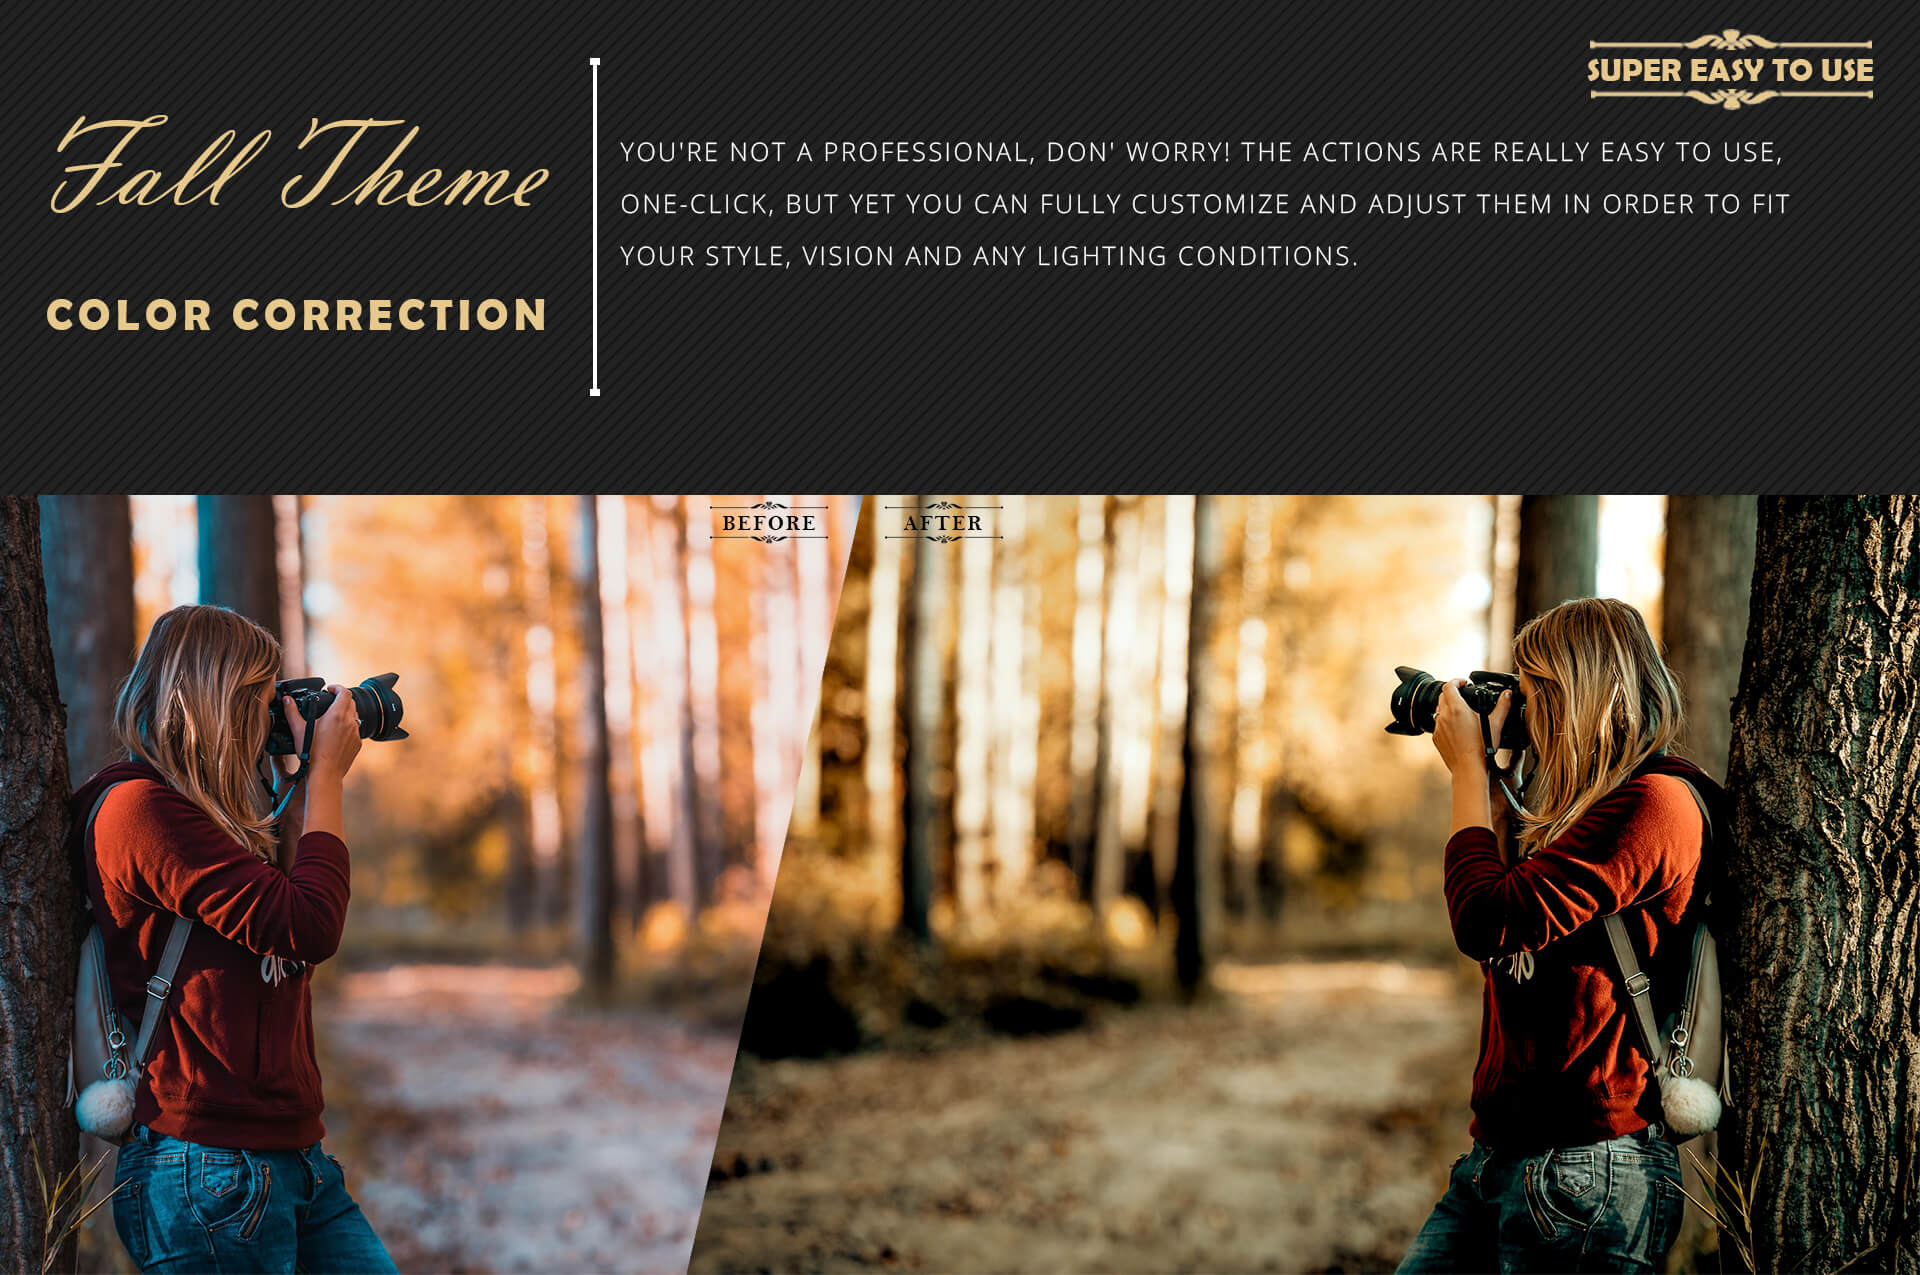 150 Fall Theme Color Grading Premium Photoshop action example image 5